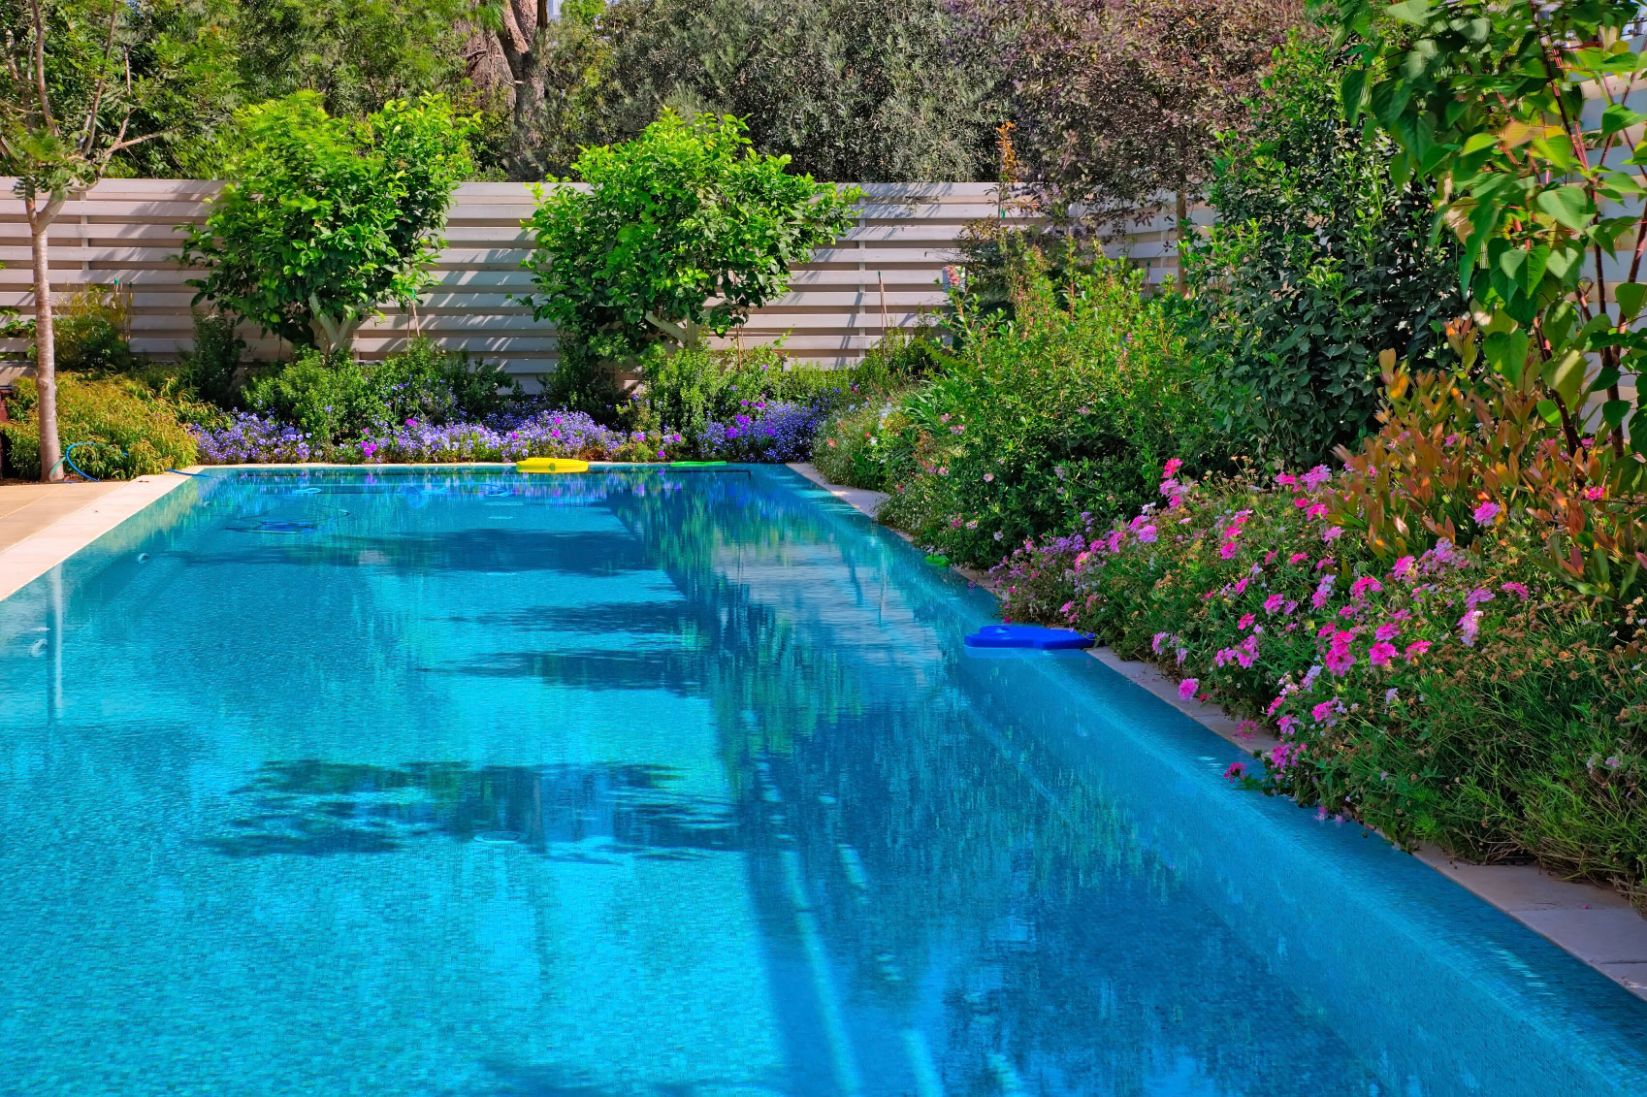 Poolside Gardens - What Are Some Poolside Plants - pool landscaping ideas for privacy